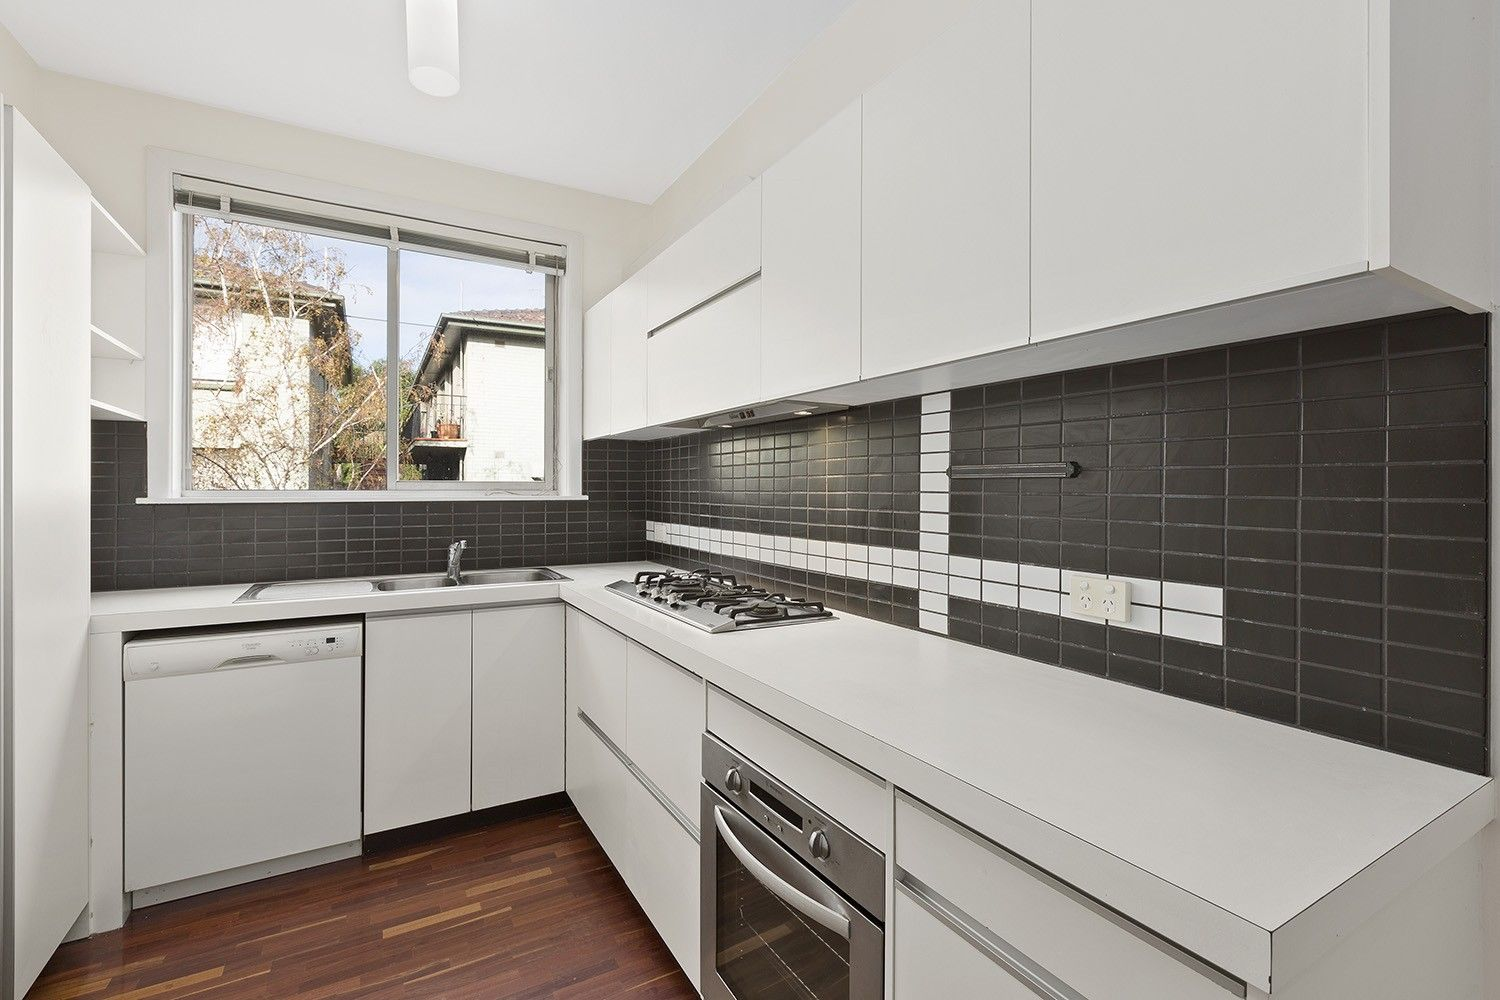 17/211 Gold Street, Clifton Hill VIC 3068, Image 2